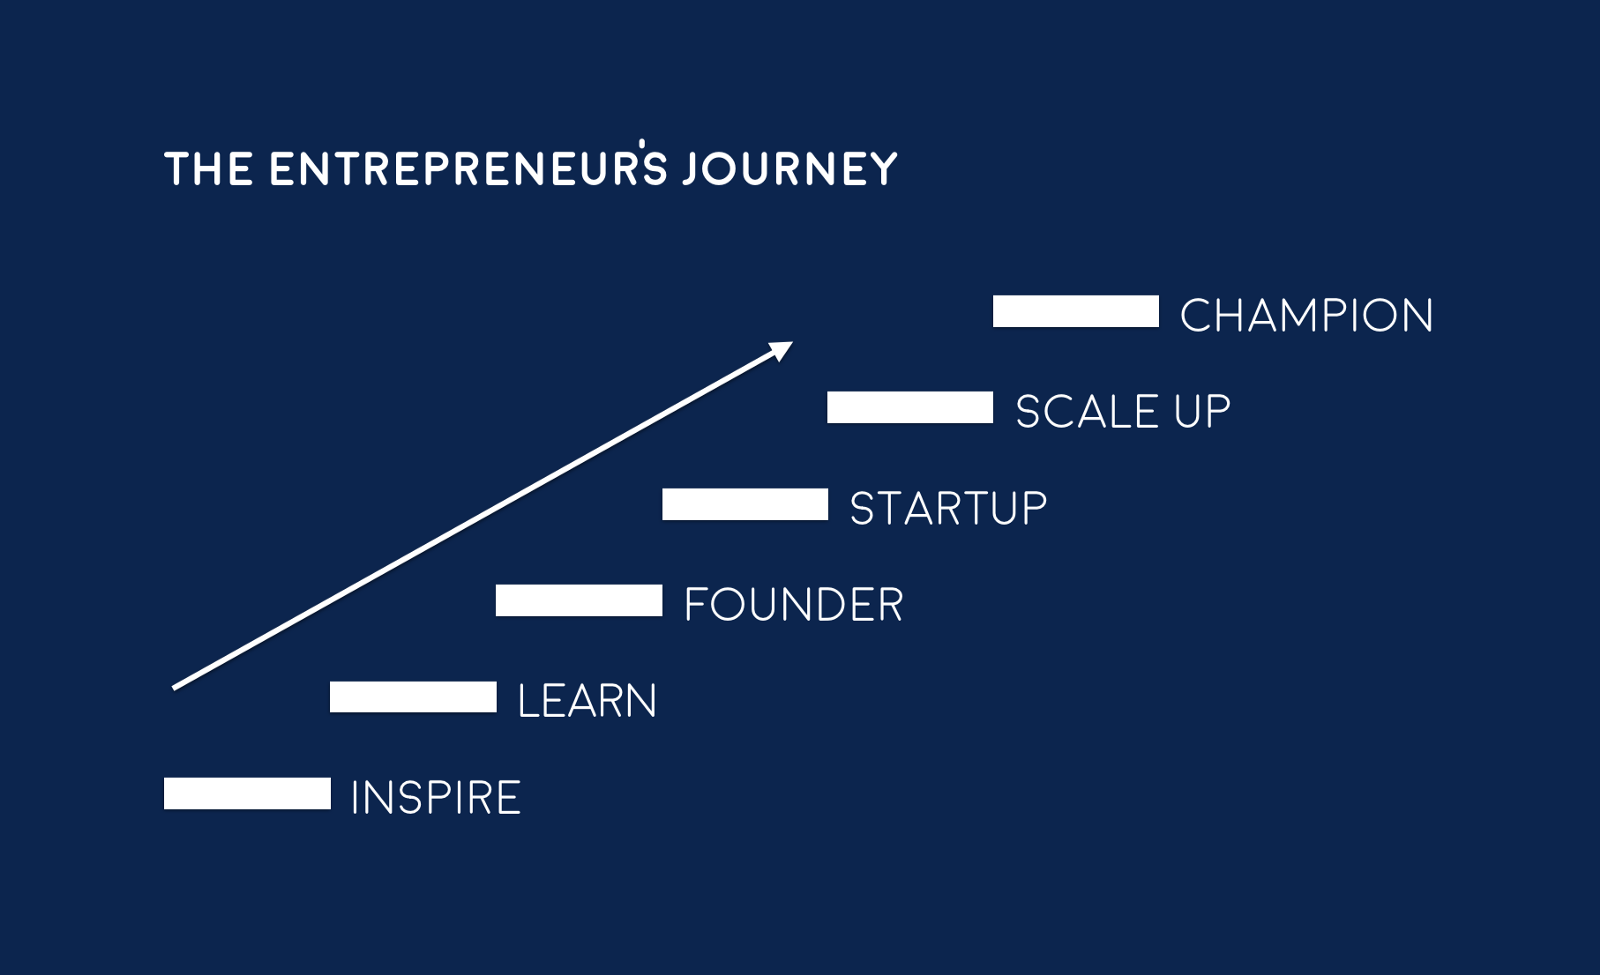 The Entrepreneur s Journey — originally developed by Startup Weekend a44fdb646